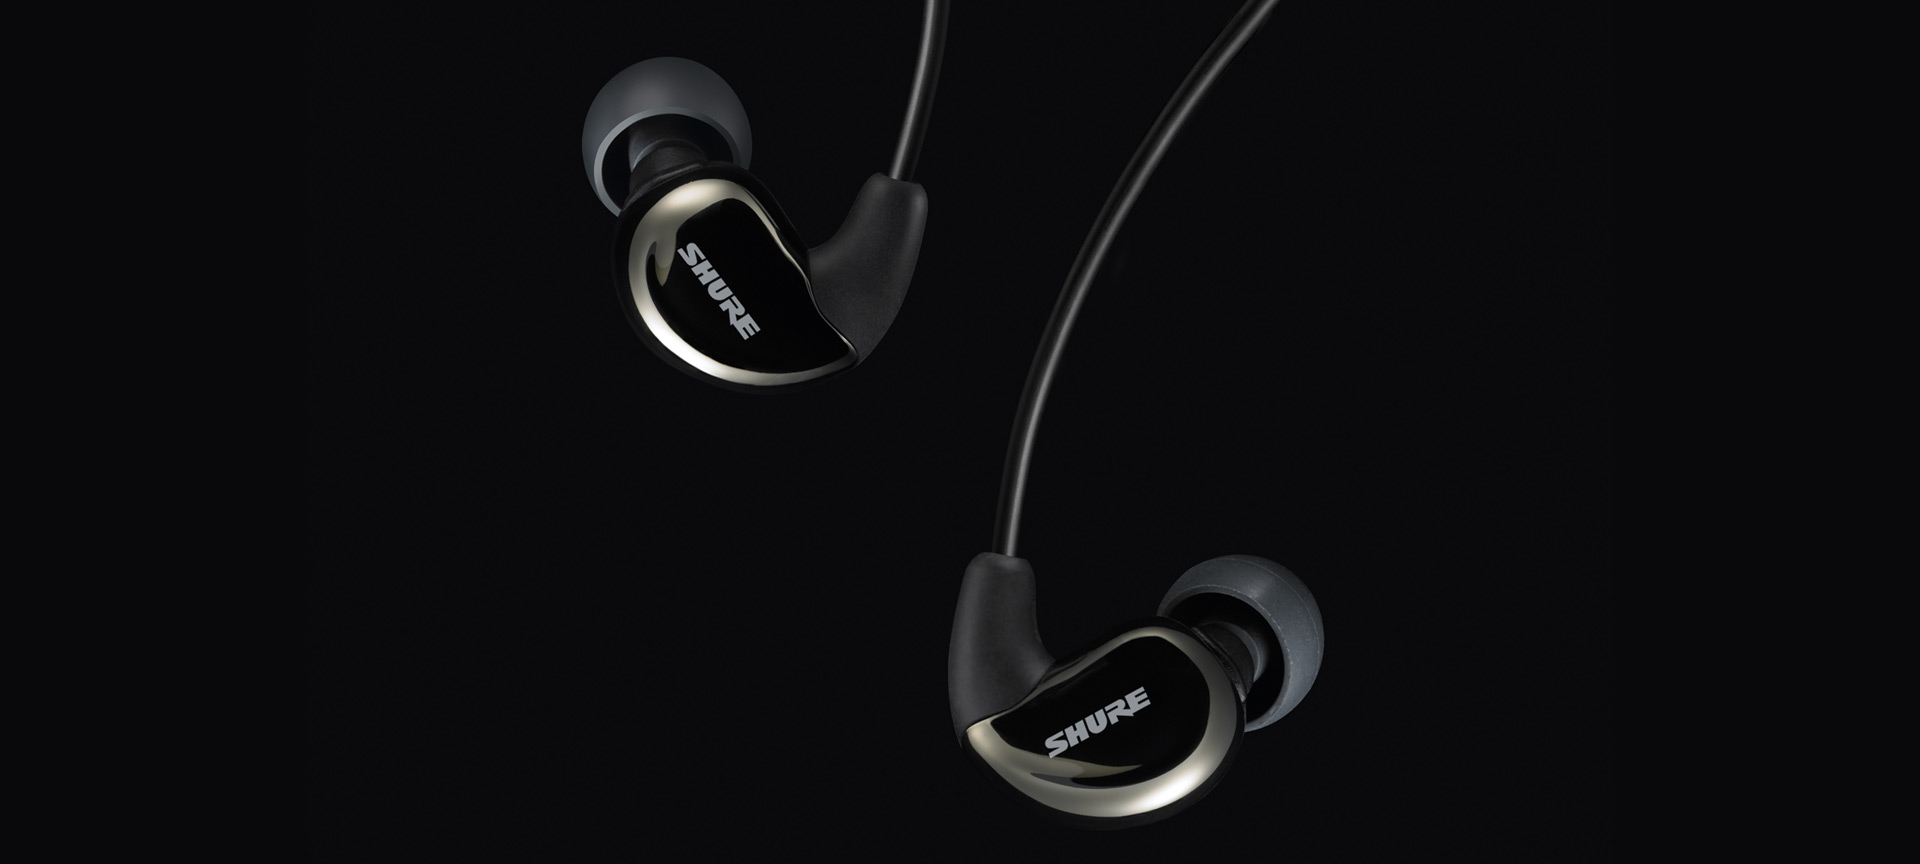 shure, auriculares, audifonos, musica